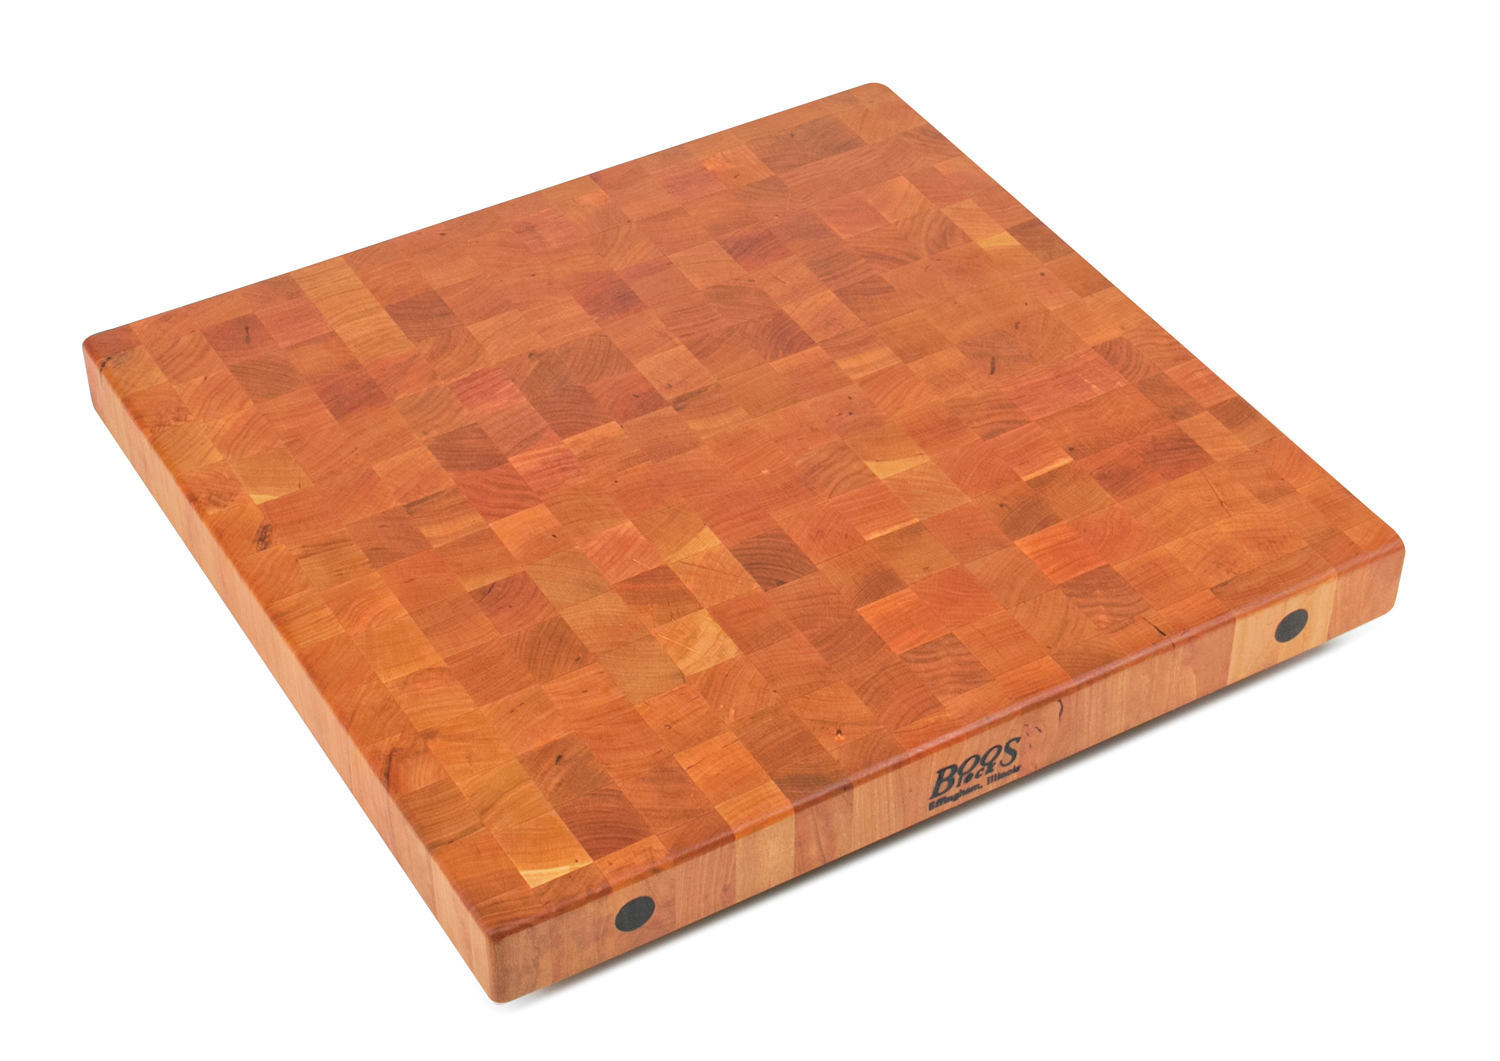 7 inch thick cherry end grain butcher block countertops 25 inches wide